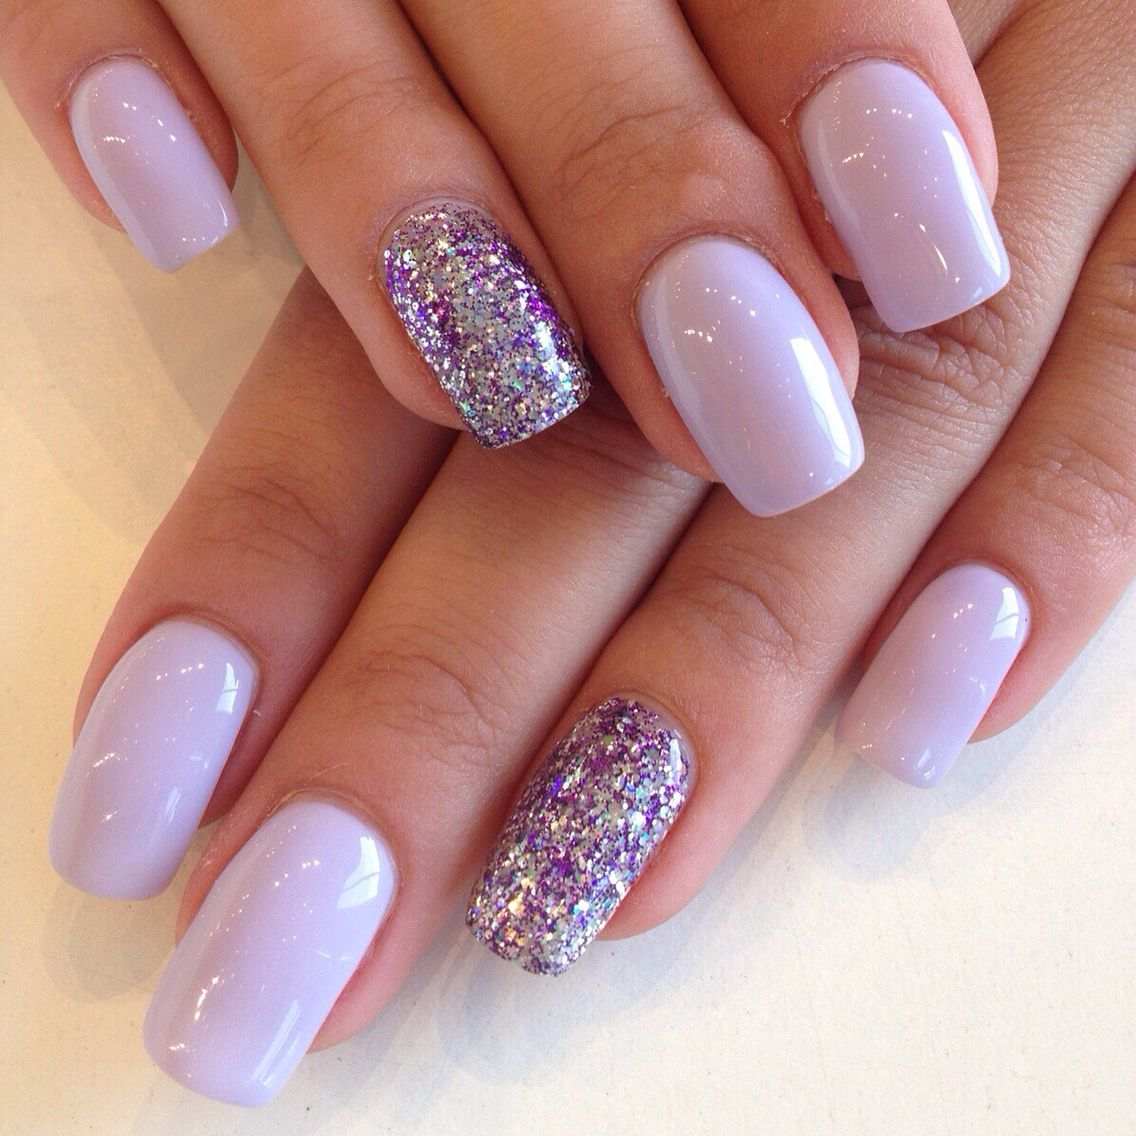 Manicuremonday Summertrend Lavender Nails Lavender Purple Glitter Bombshell Beauty Bombshellbeautyoc Purple Nail Art Purple Nail Art Designs Nails